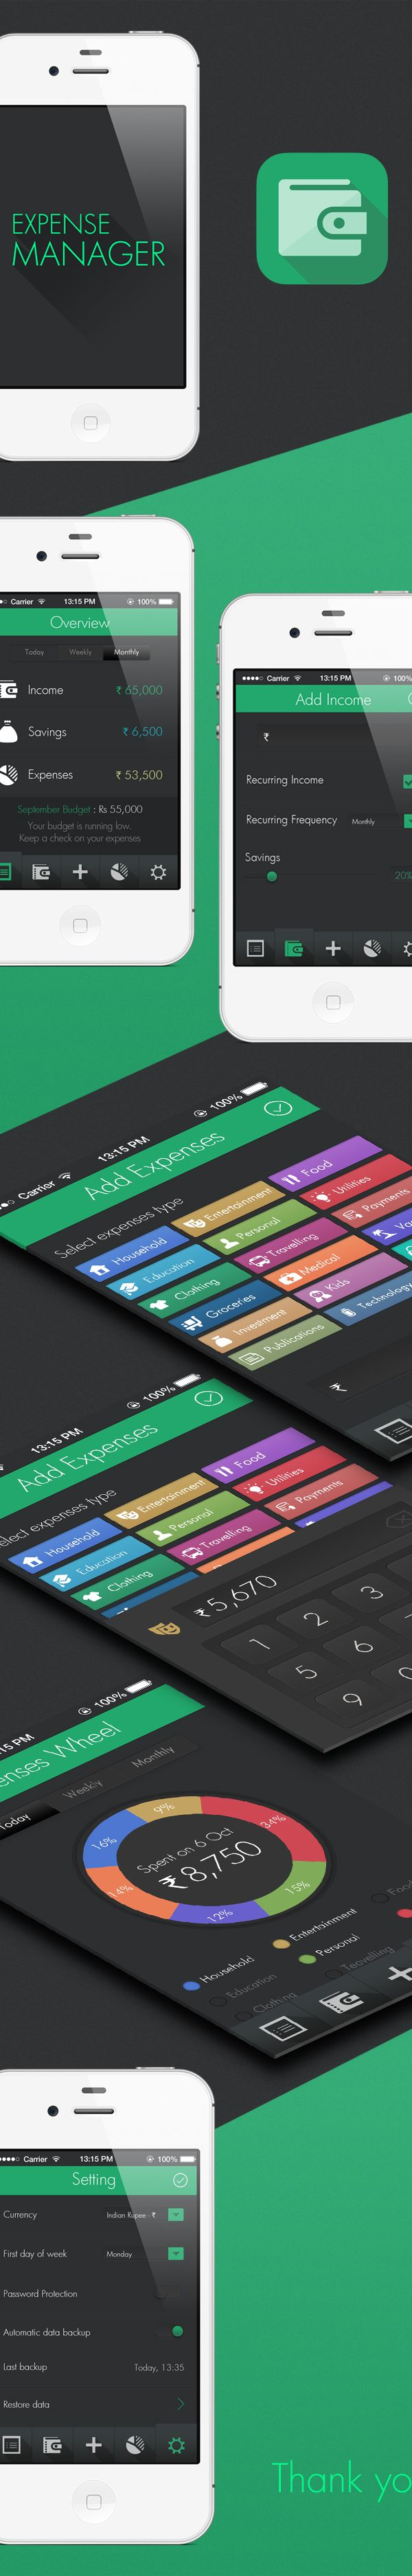 Expense manager by Pritesh Dalal, via Behance